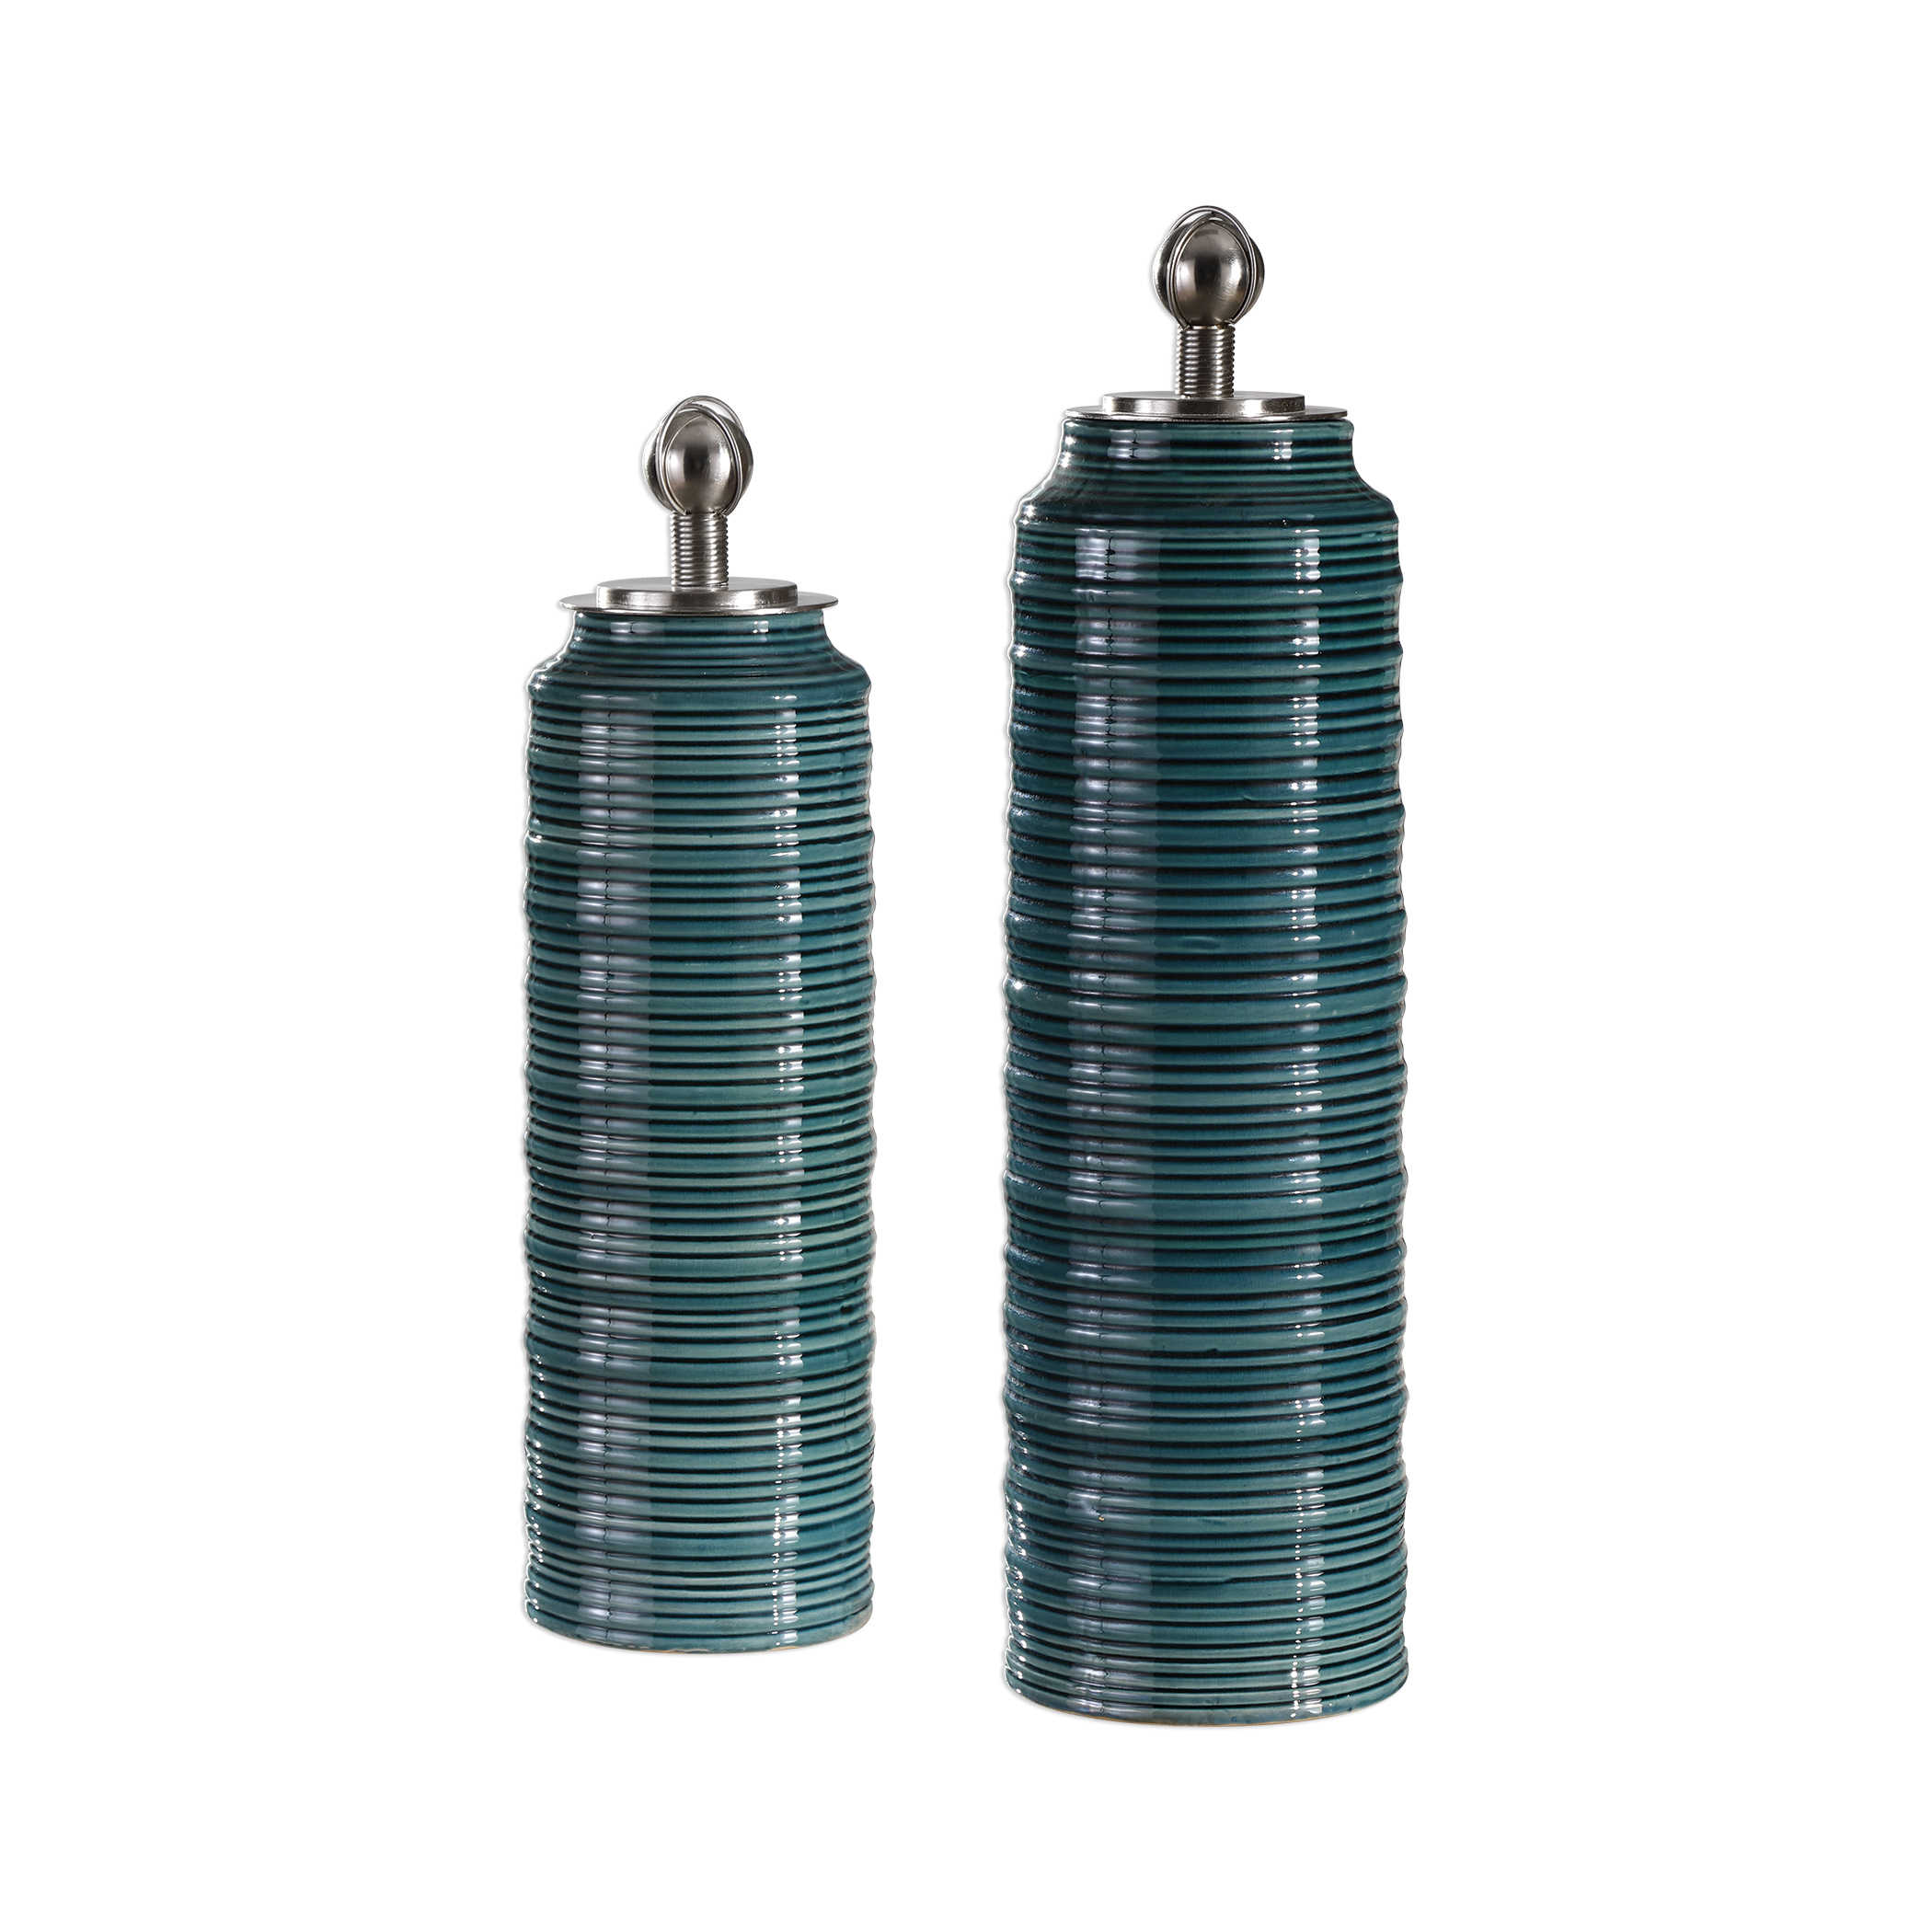 Uttermost Accessories Cayson Ribbed Ceramic Bottles S 2: Uttermost Delane Dark Teal Canisters S/2